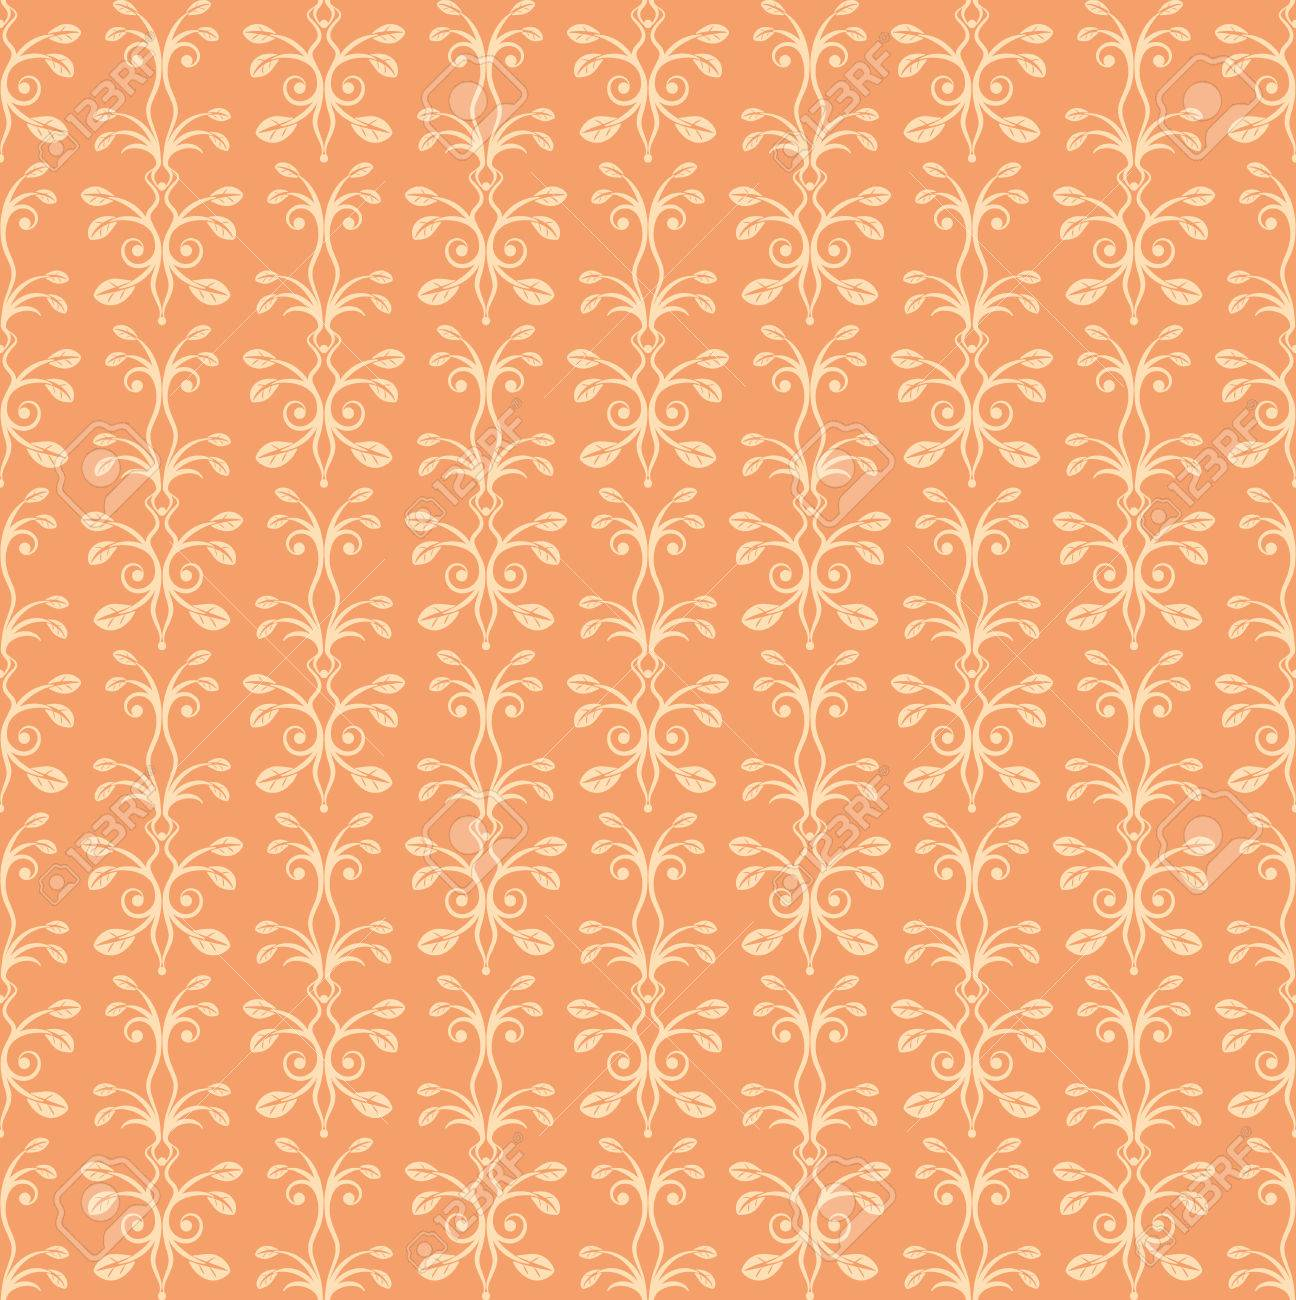 68478949 orange floral ornament seamless pattern vintage luxury texture for wallpapers and backgrounds vector